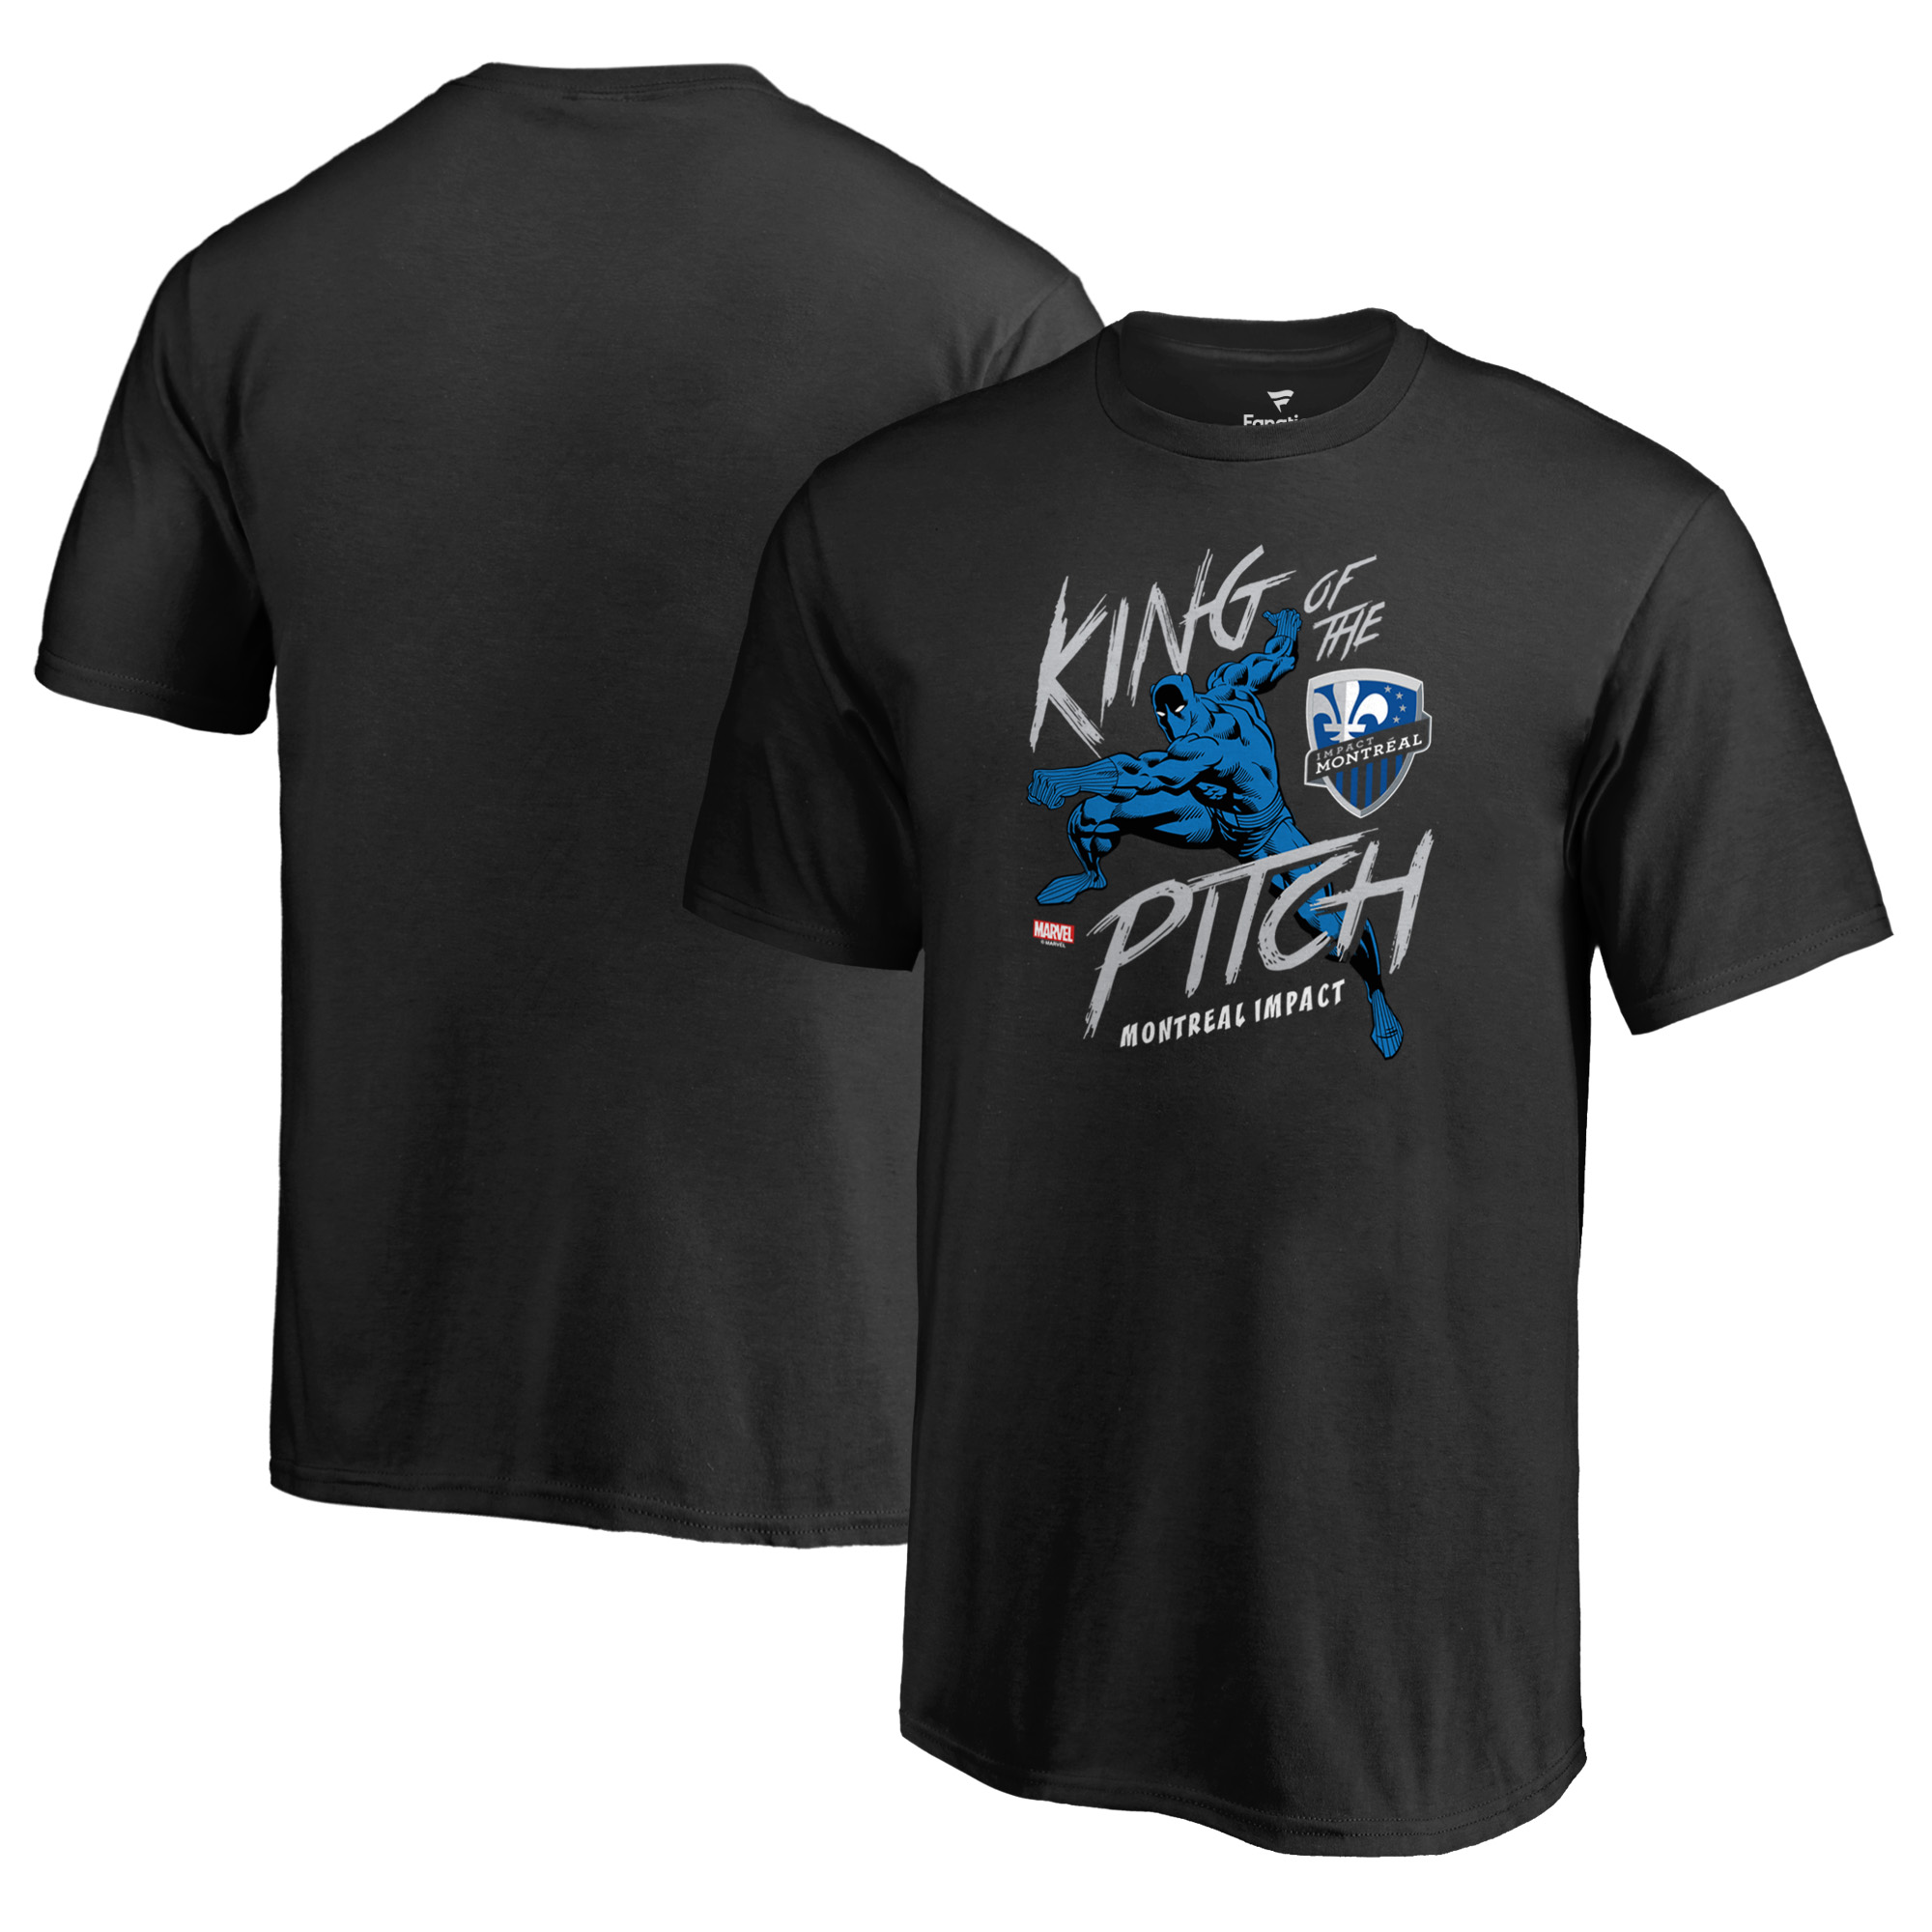 Montreal Impact Fanatics Branded Youth MLS Marvel Black Panther King of the Pitch T-Shirt - Black